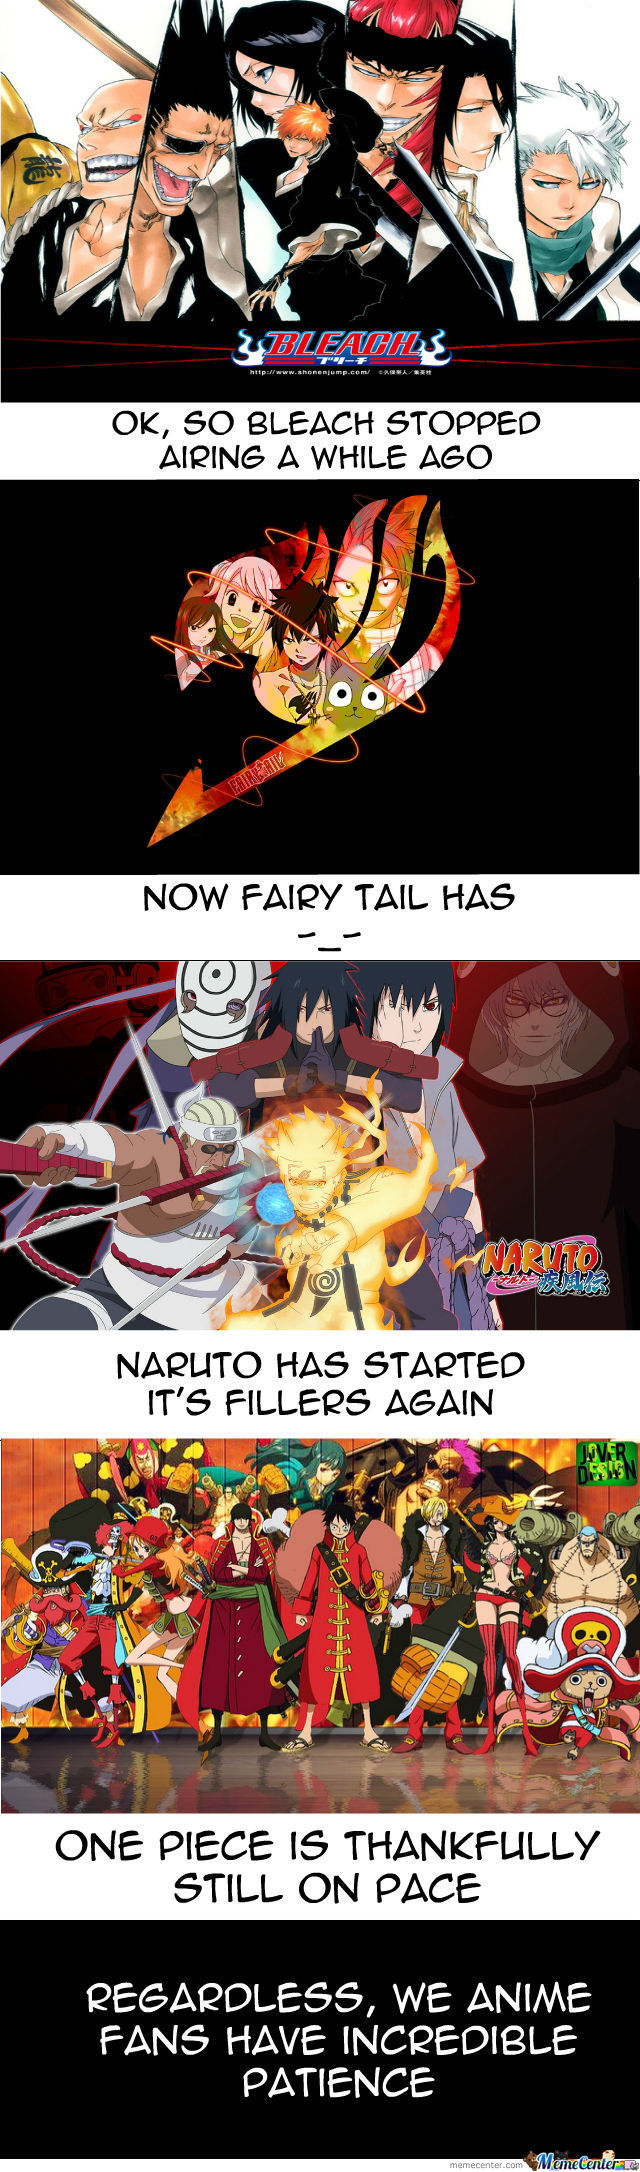 The Patience Of Anime Fans